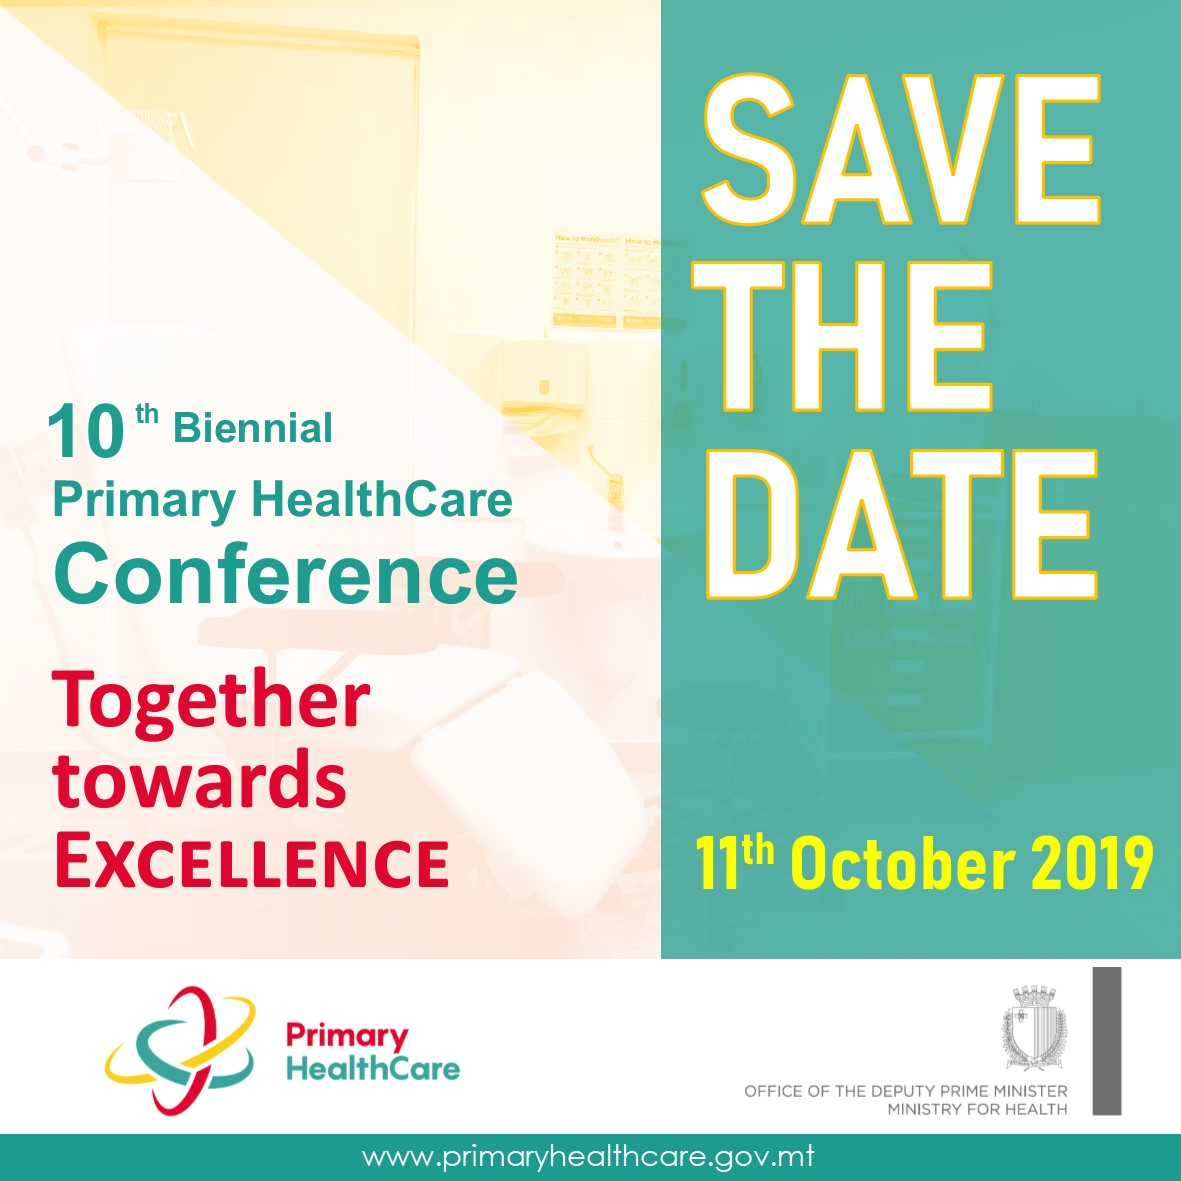 10th Biennial Primary HealthCare Conference.jpg